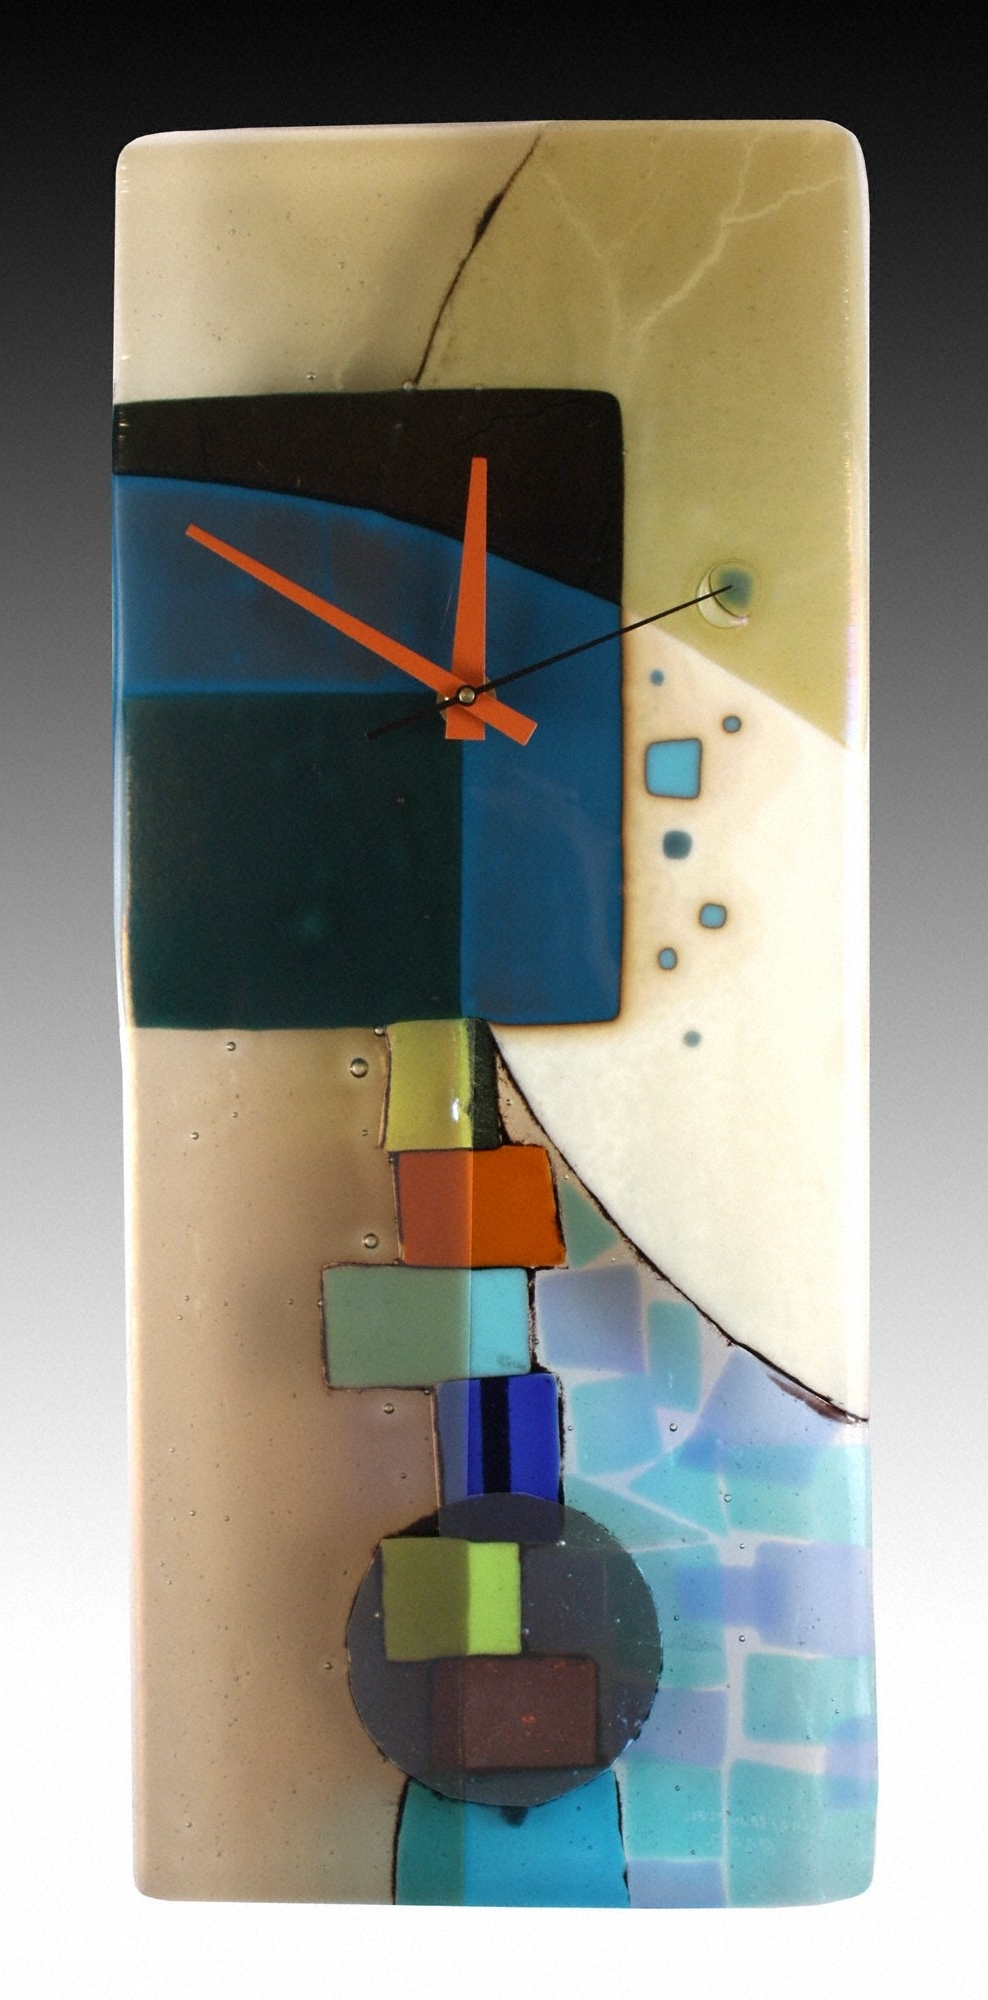 Andrea Fused Glass Pendulum Clocknina Cambron (Art Glass Clock Pertaining To Widely Used Fused Glass Wall Art For Sale (View 2 of 15)